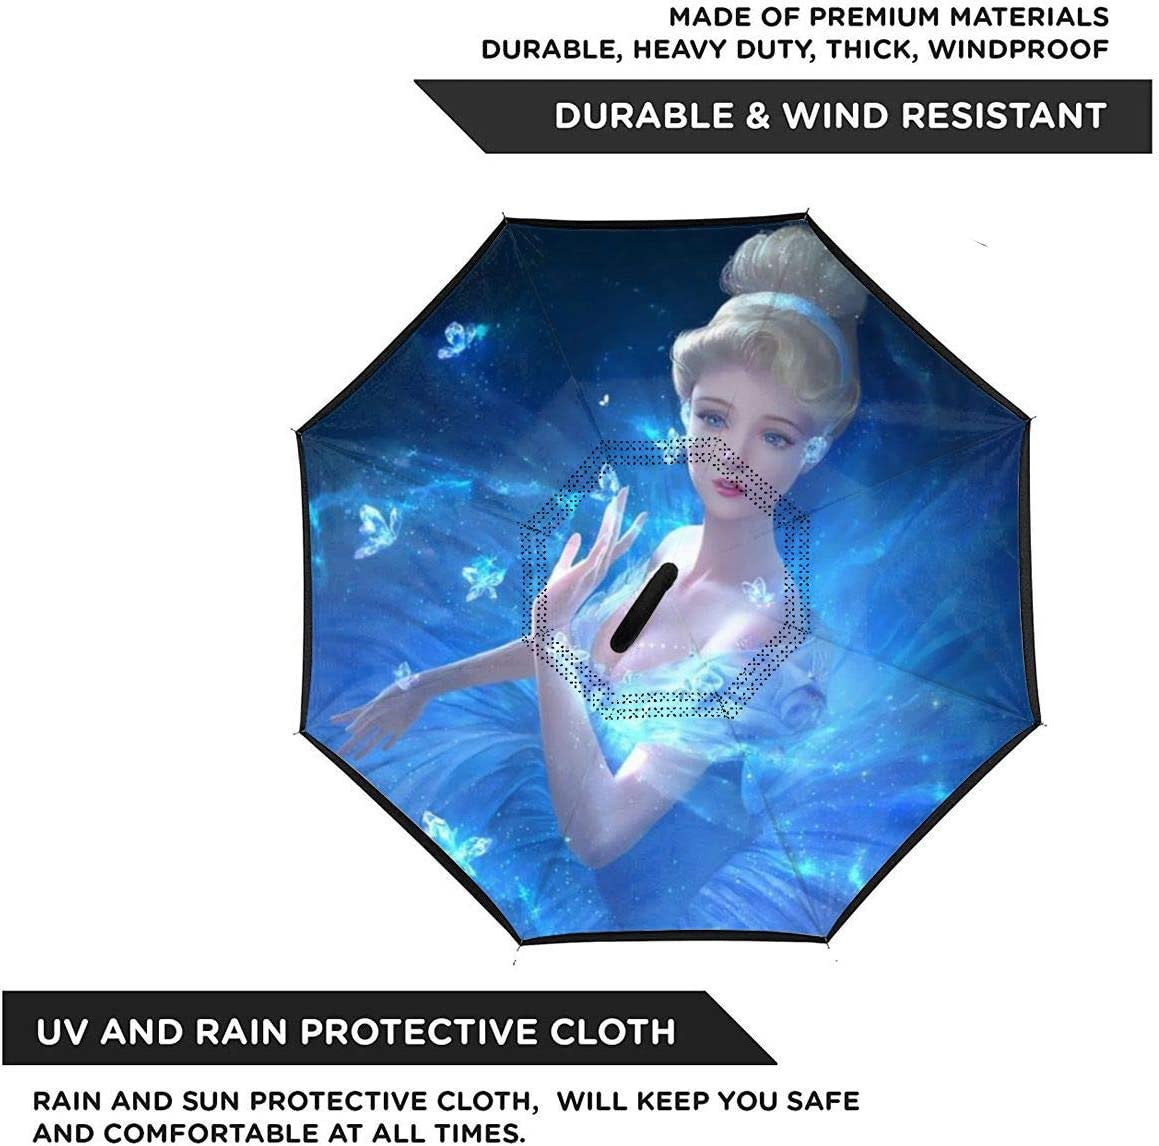 With C-Shaped Handle UV Protection Inverted Folding Umbrellas Frozen Girl Princess Dream Car Reverse Umbrella Windproof And Rainproof Double Folding Inverted Umbrella